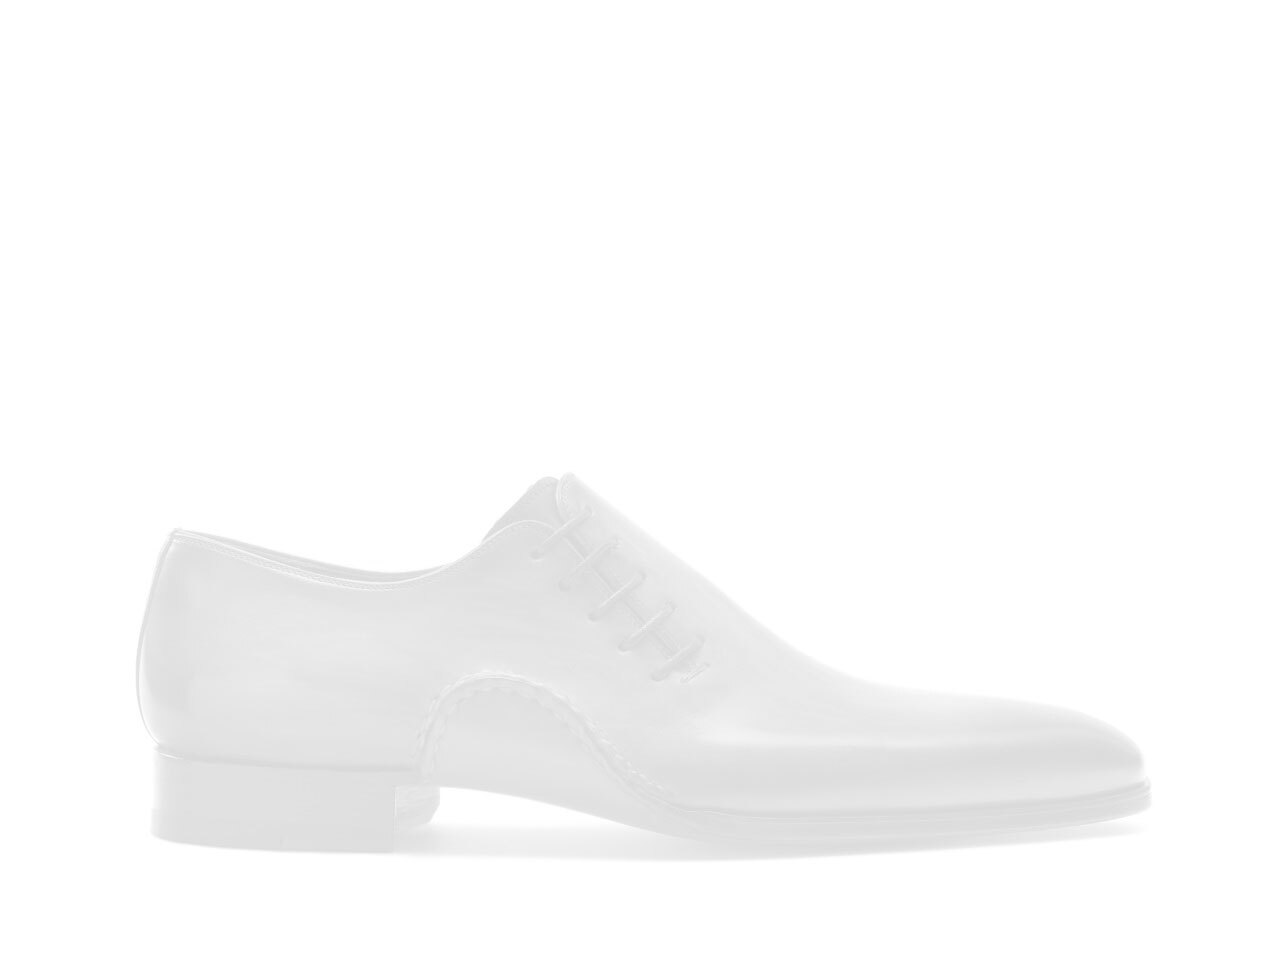 Side view of the Magnanni Magnanni X Pelotonia Women's Sneakers